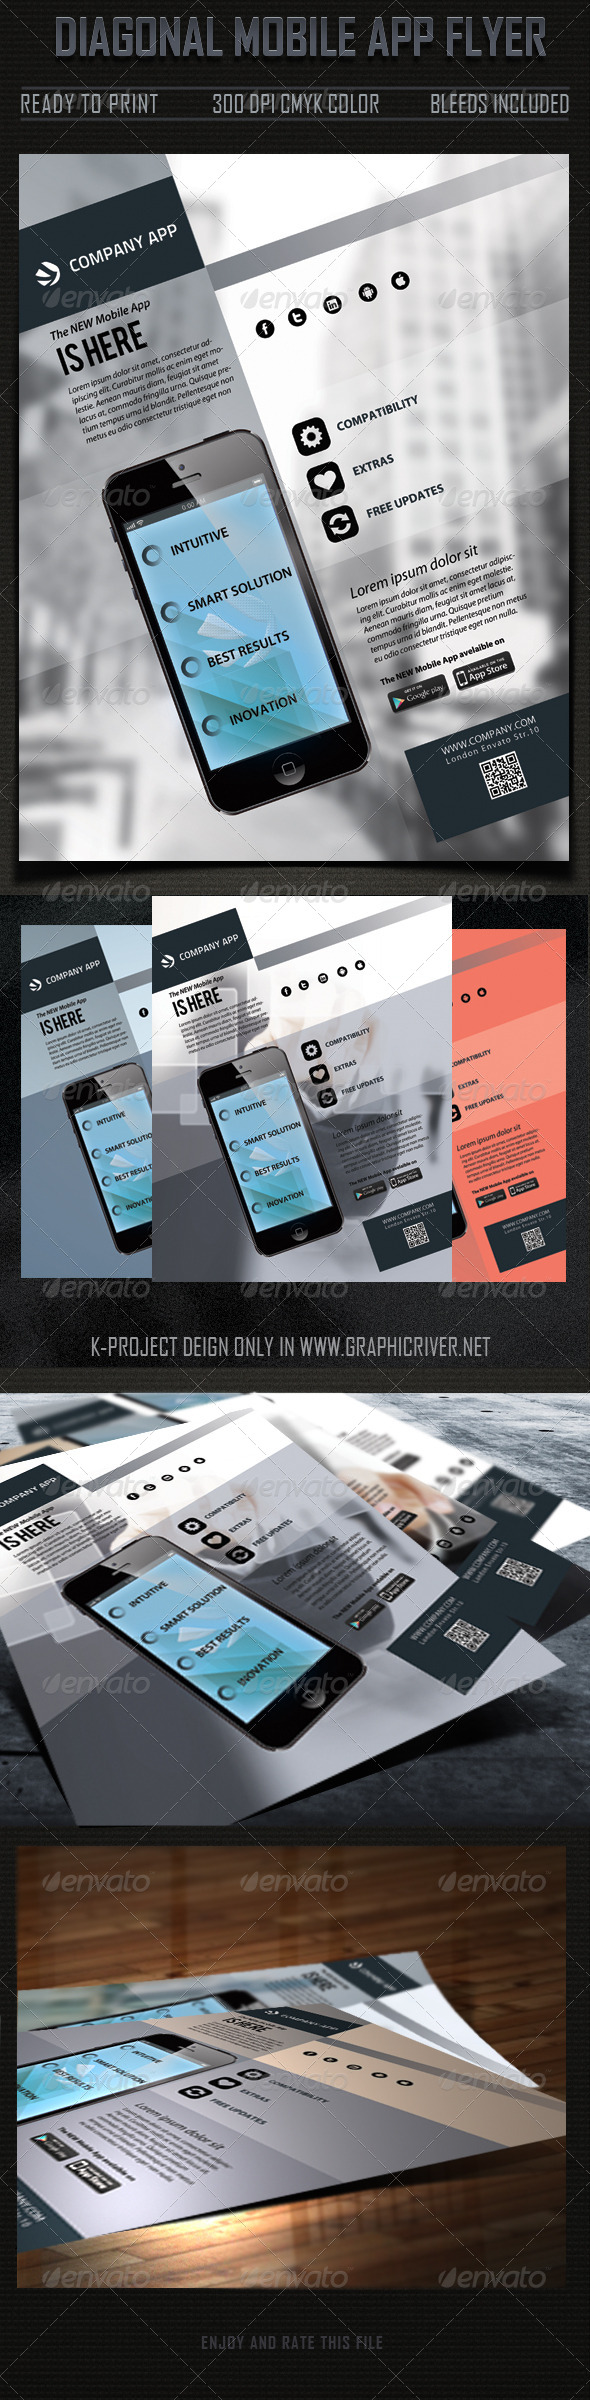 GraphicRiver Diagonal Mobile App Flyer 5872377